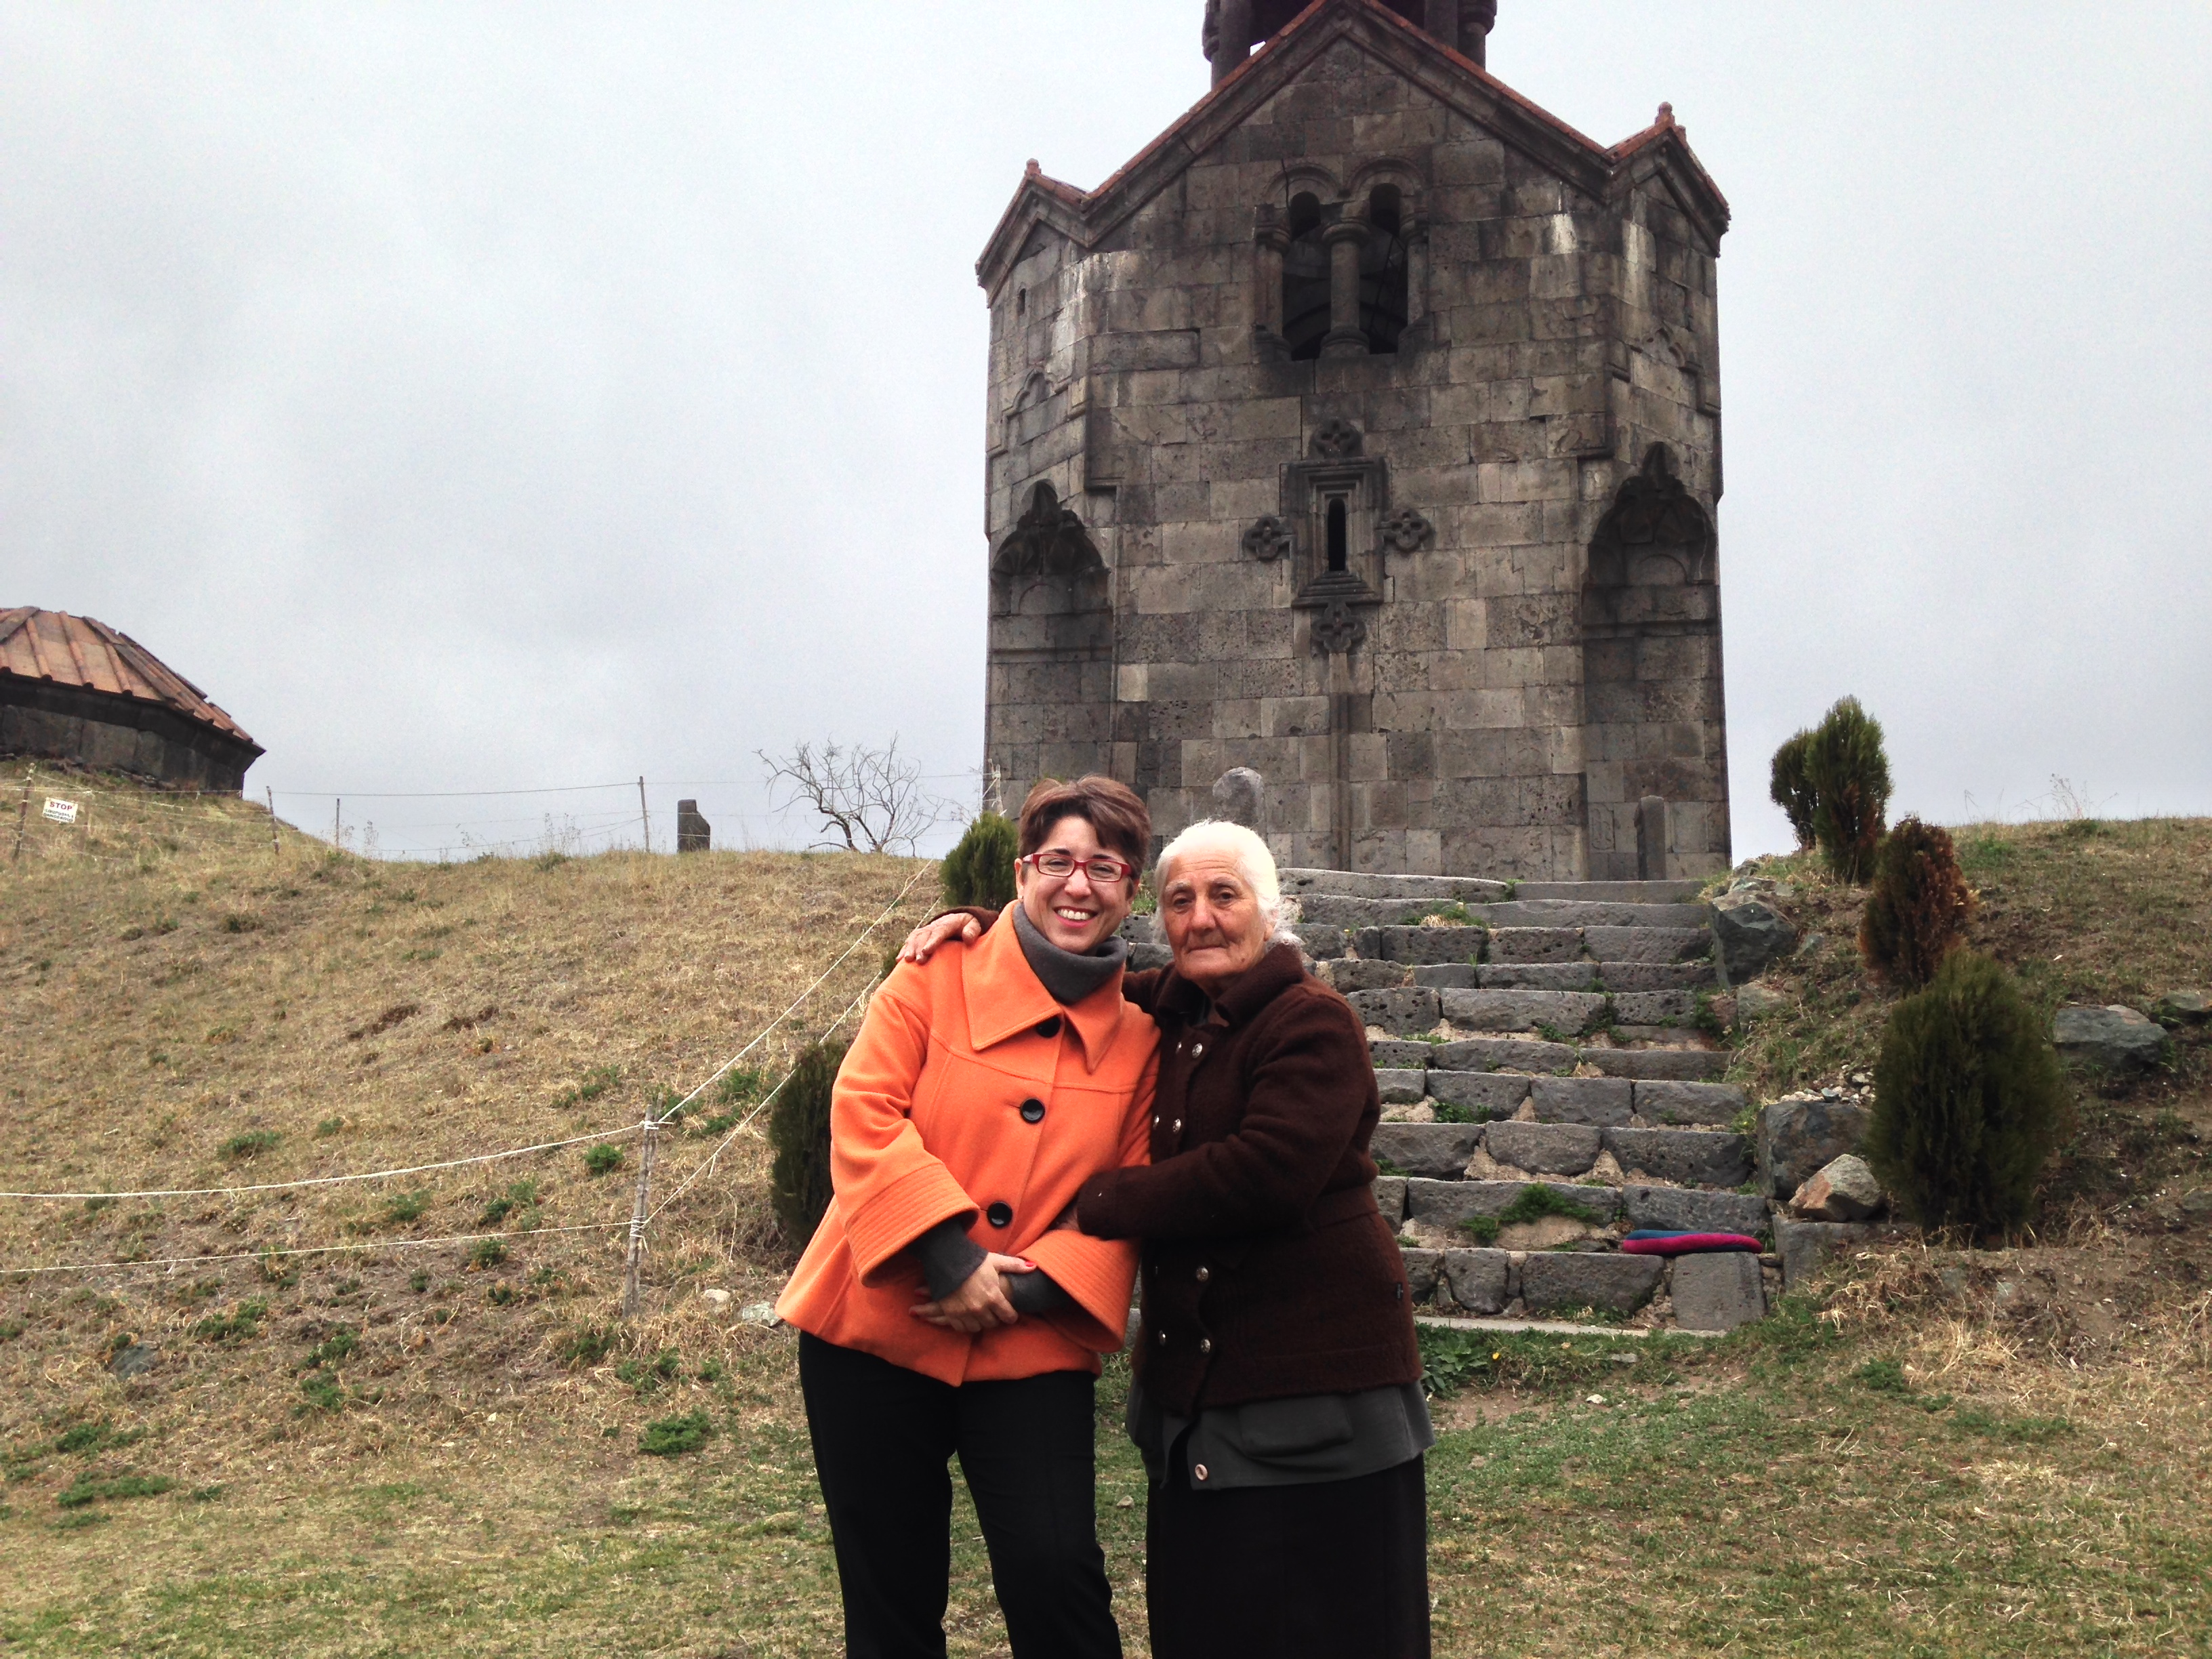 monasterio, Armenia, viajar a Armenia, noravan, fow, focus on women